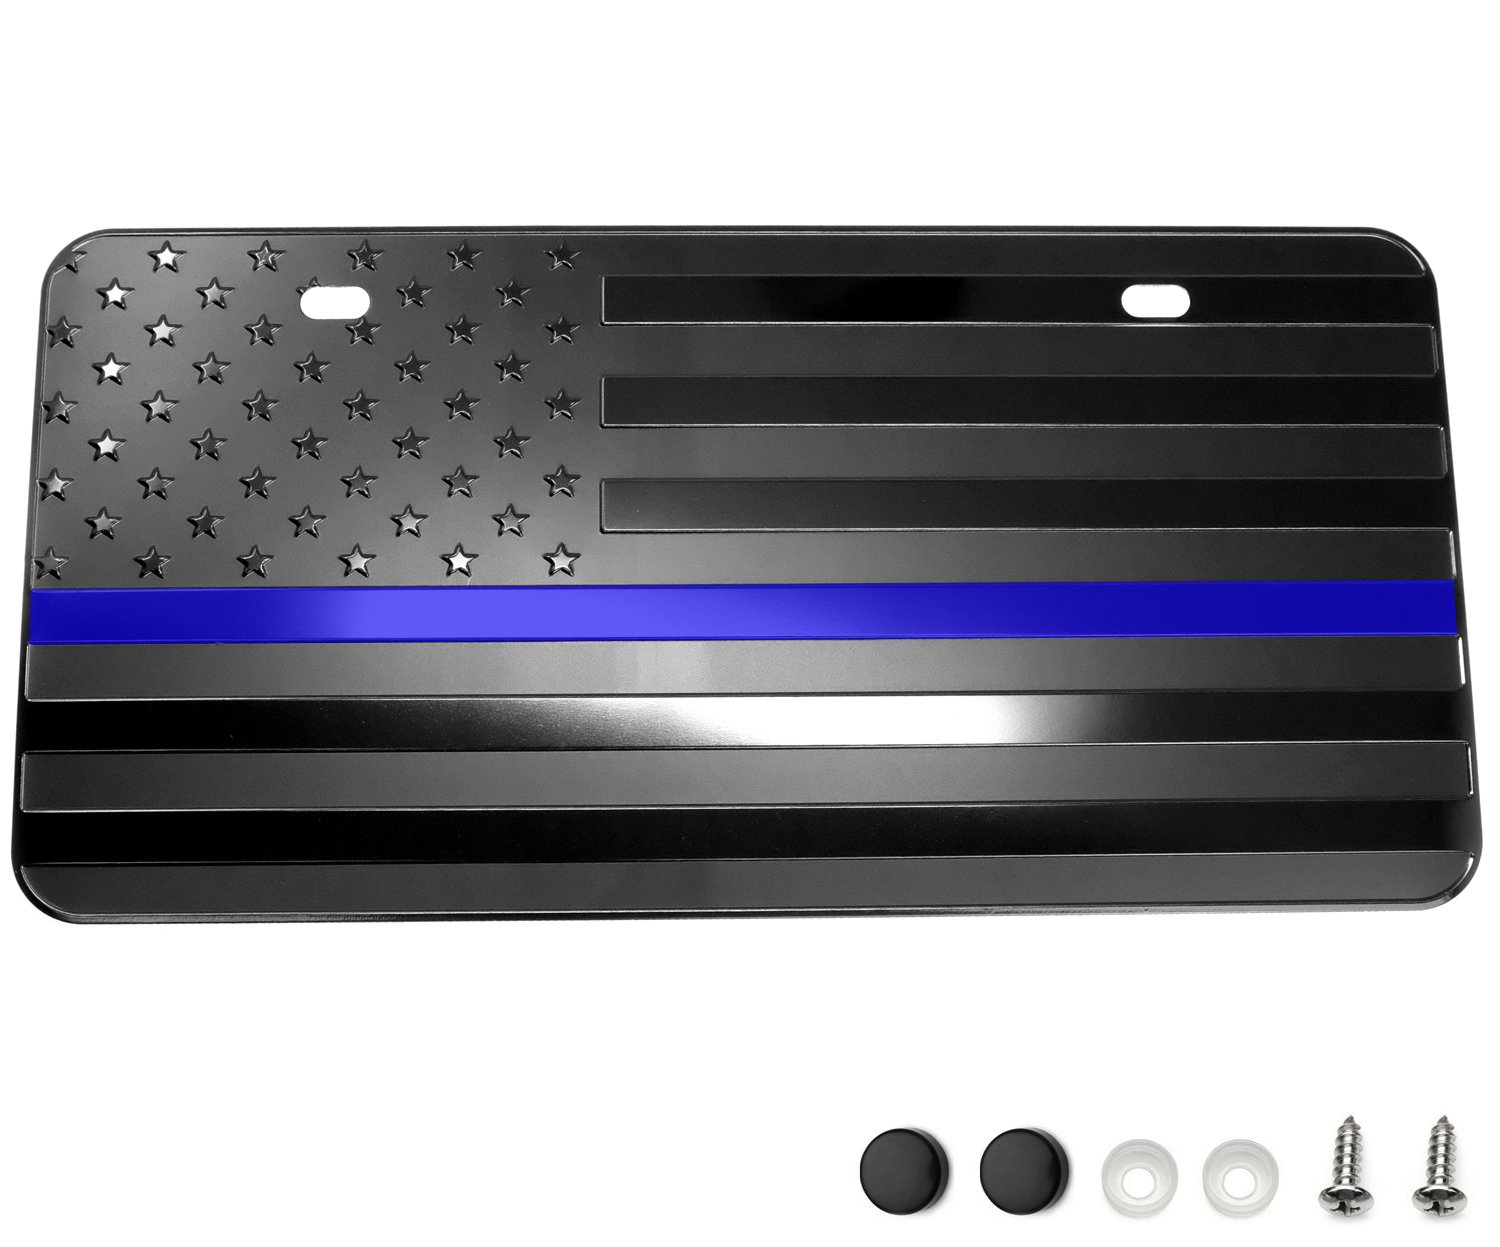 LFPartS USA American Black Flag Metal Embossed License Plate (12''x6'', Black with Thin Blue line) by LFPartS (Image #1)